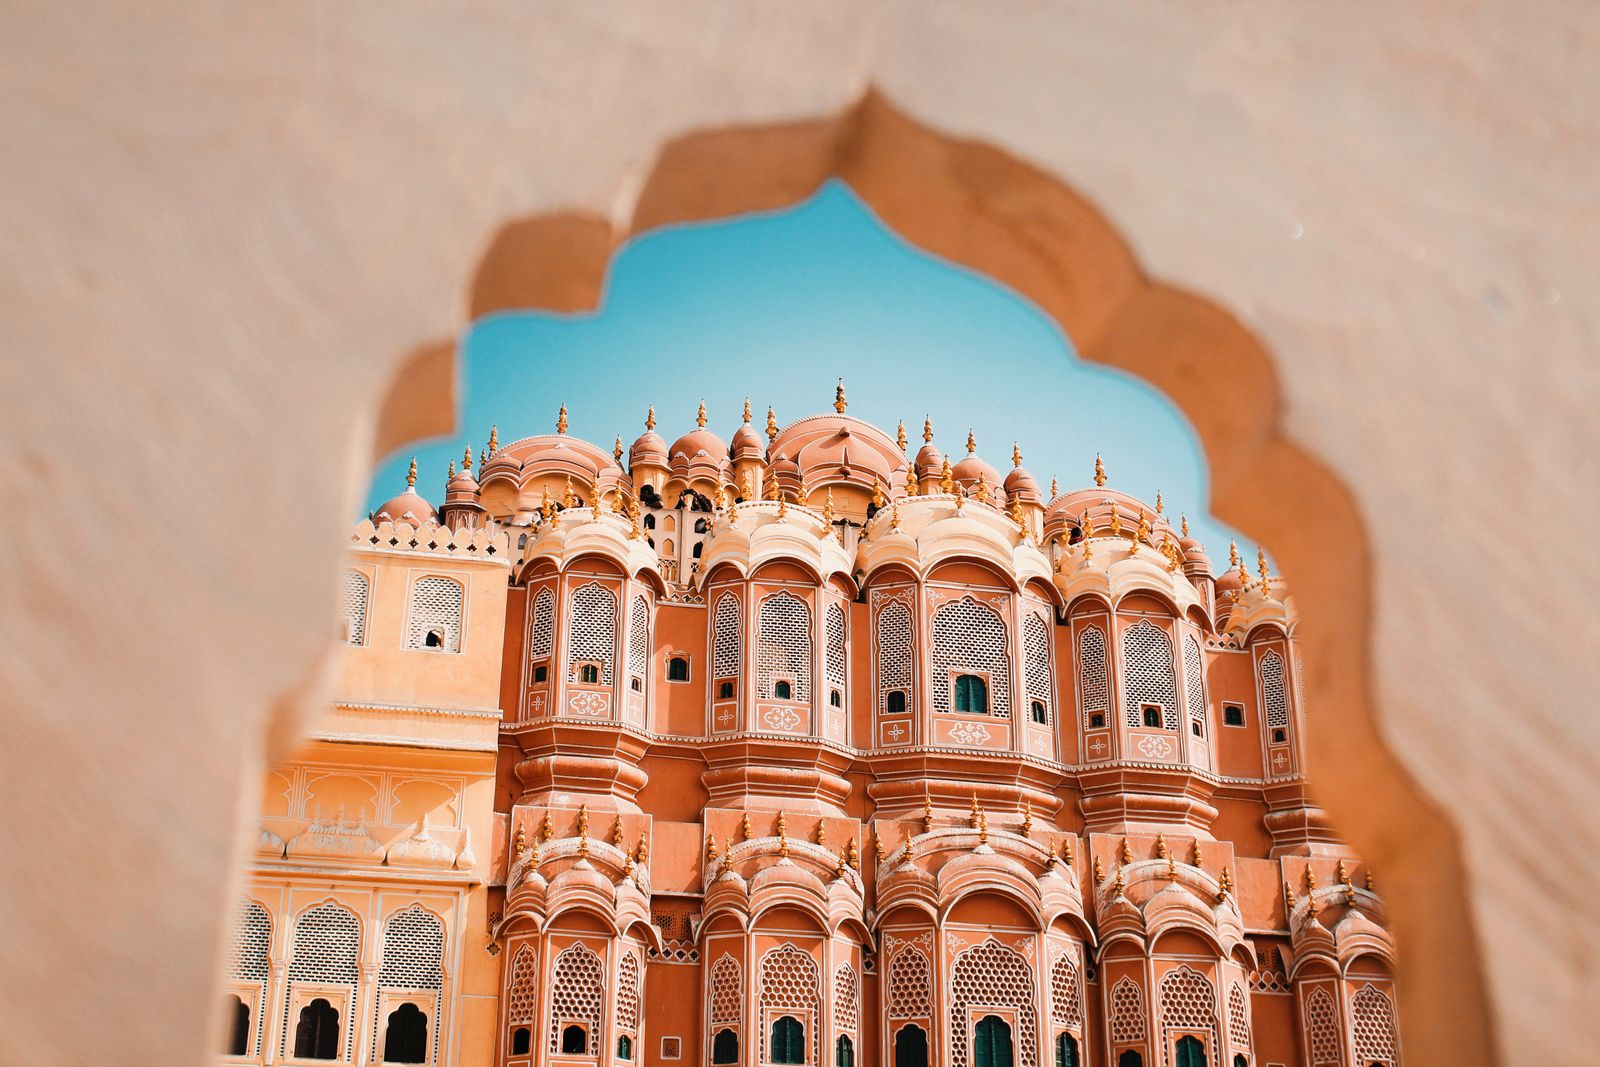 Inside of the Hawa Mahal or The palace of winds at Jaipur India. It is constructed of red and pink sandstone.